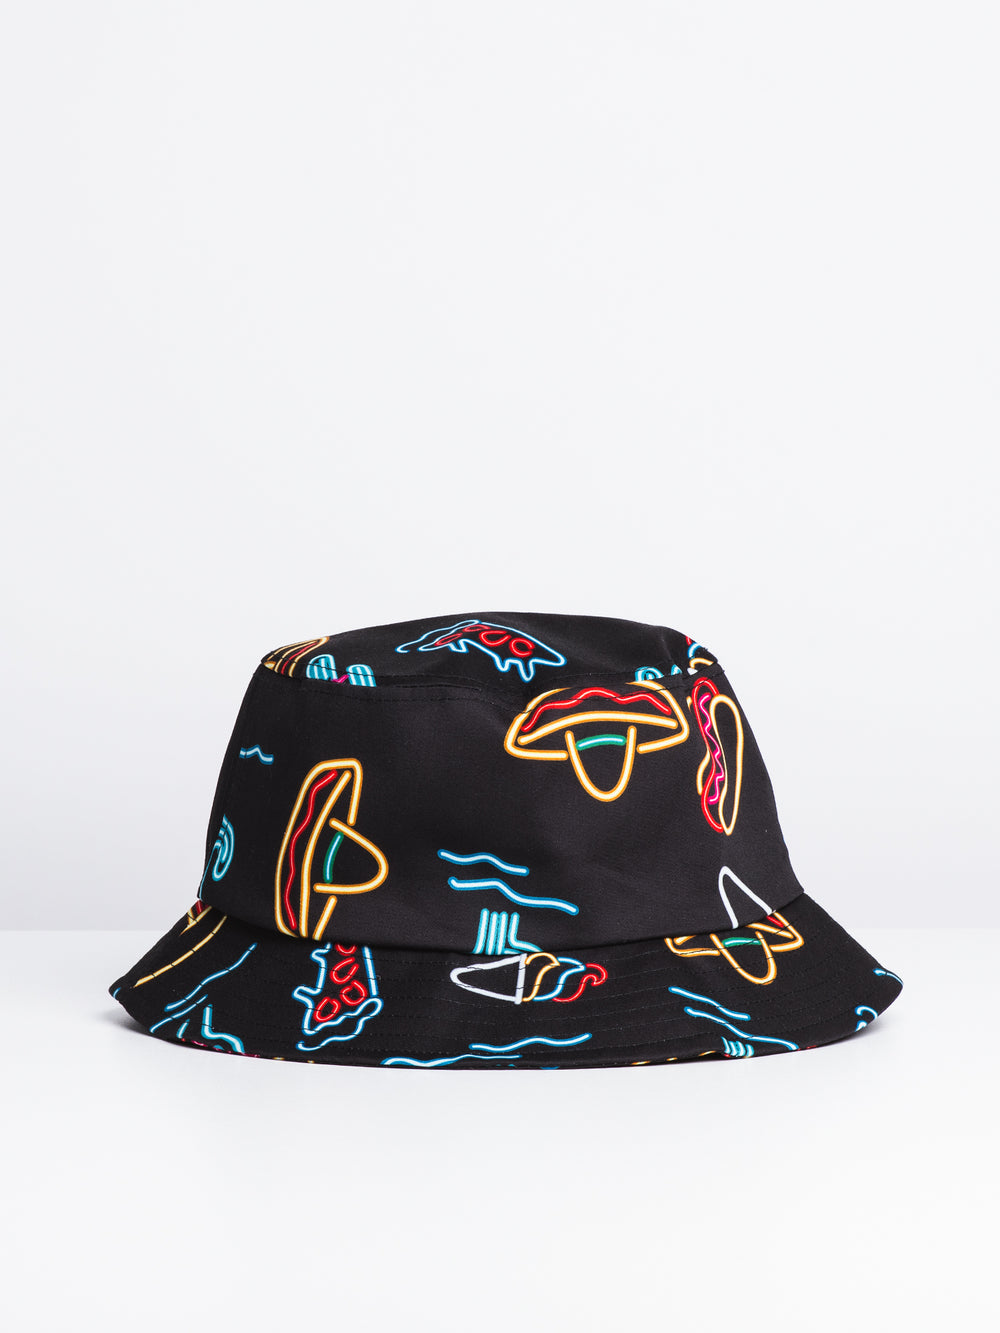 PARTY PRINT HAT - BLACK